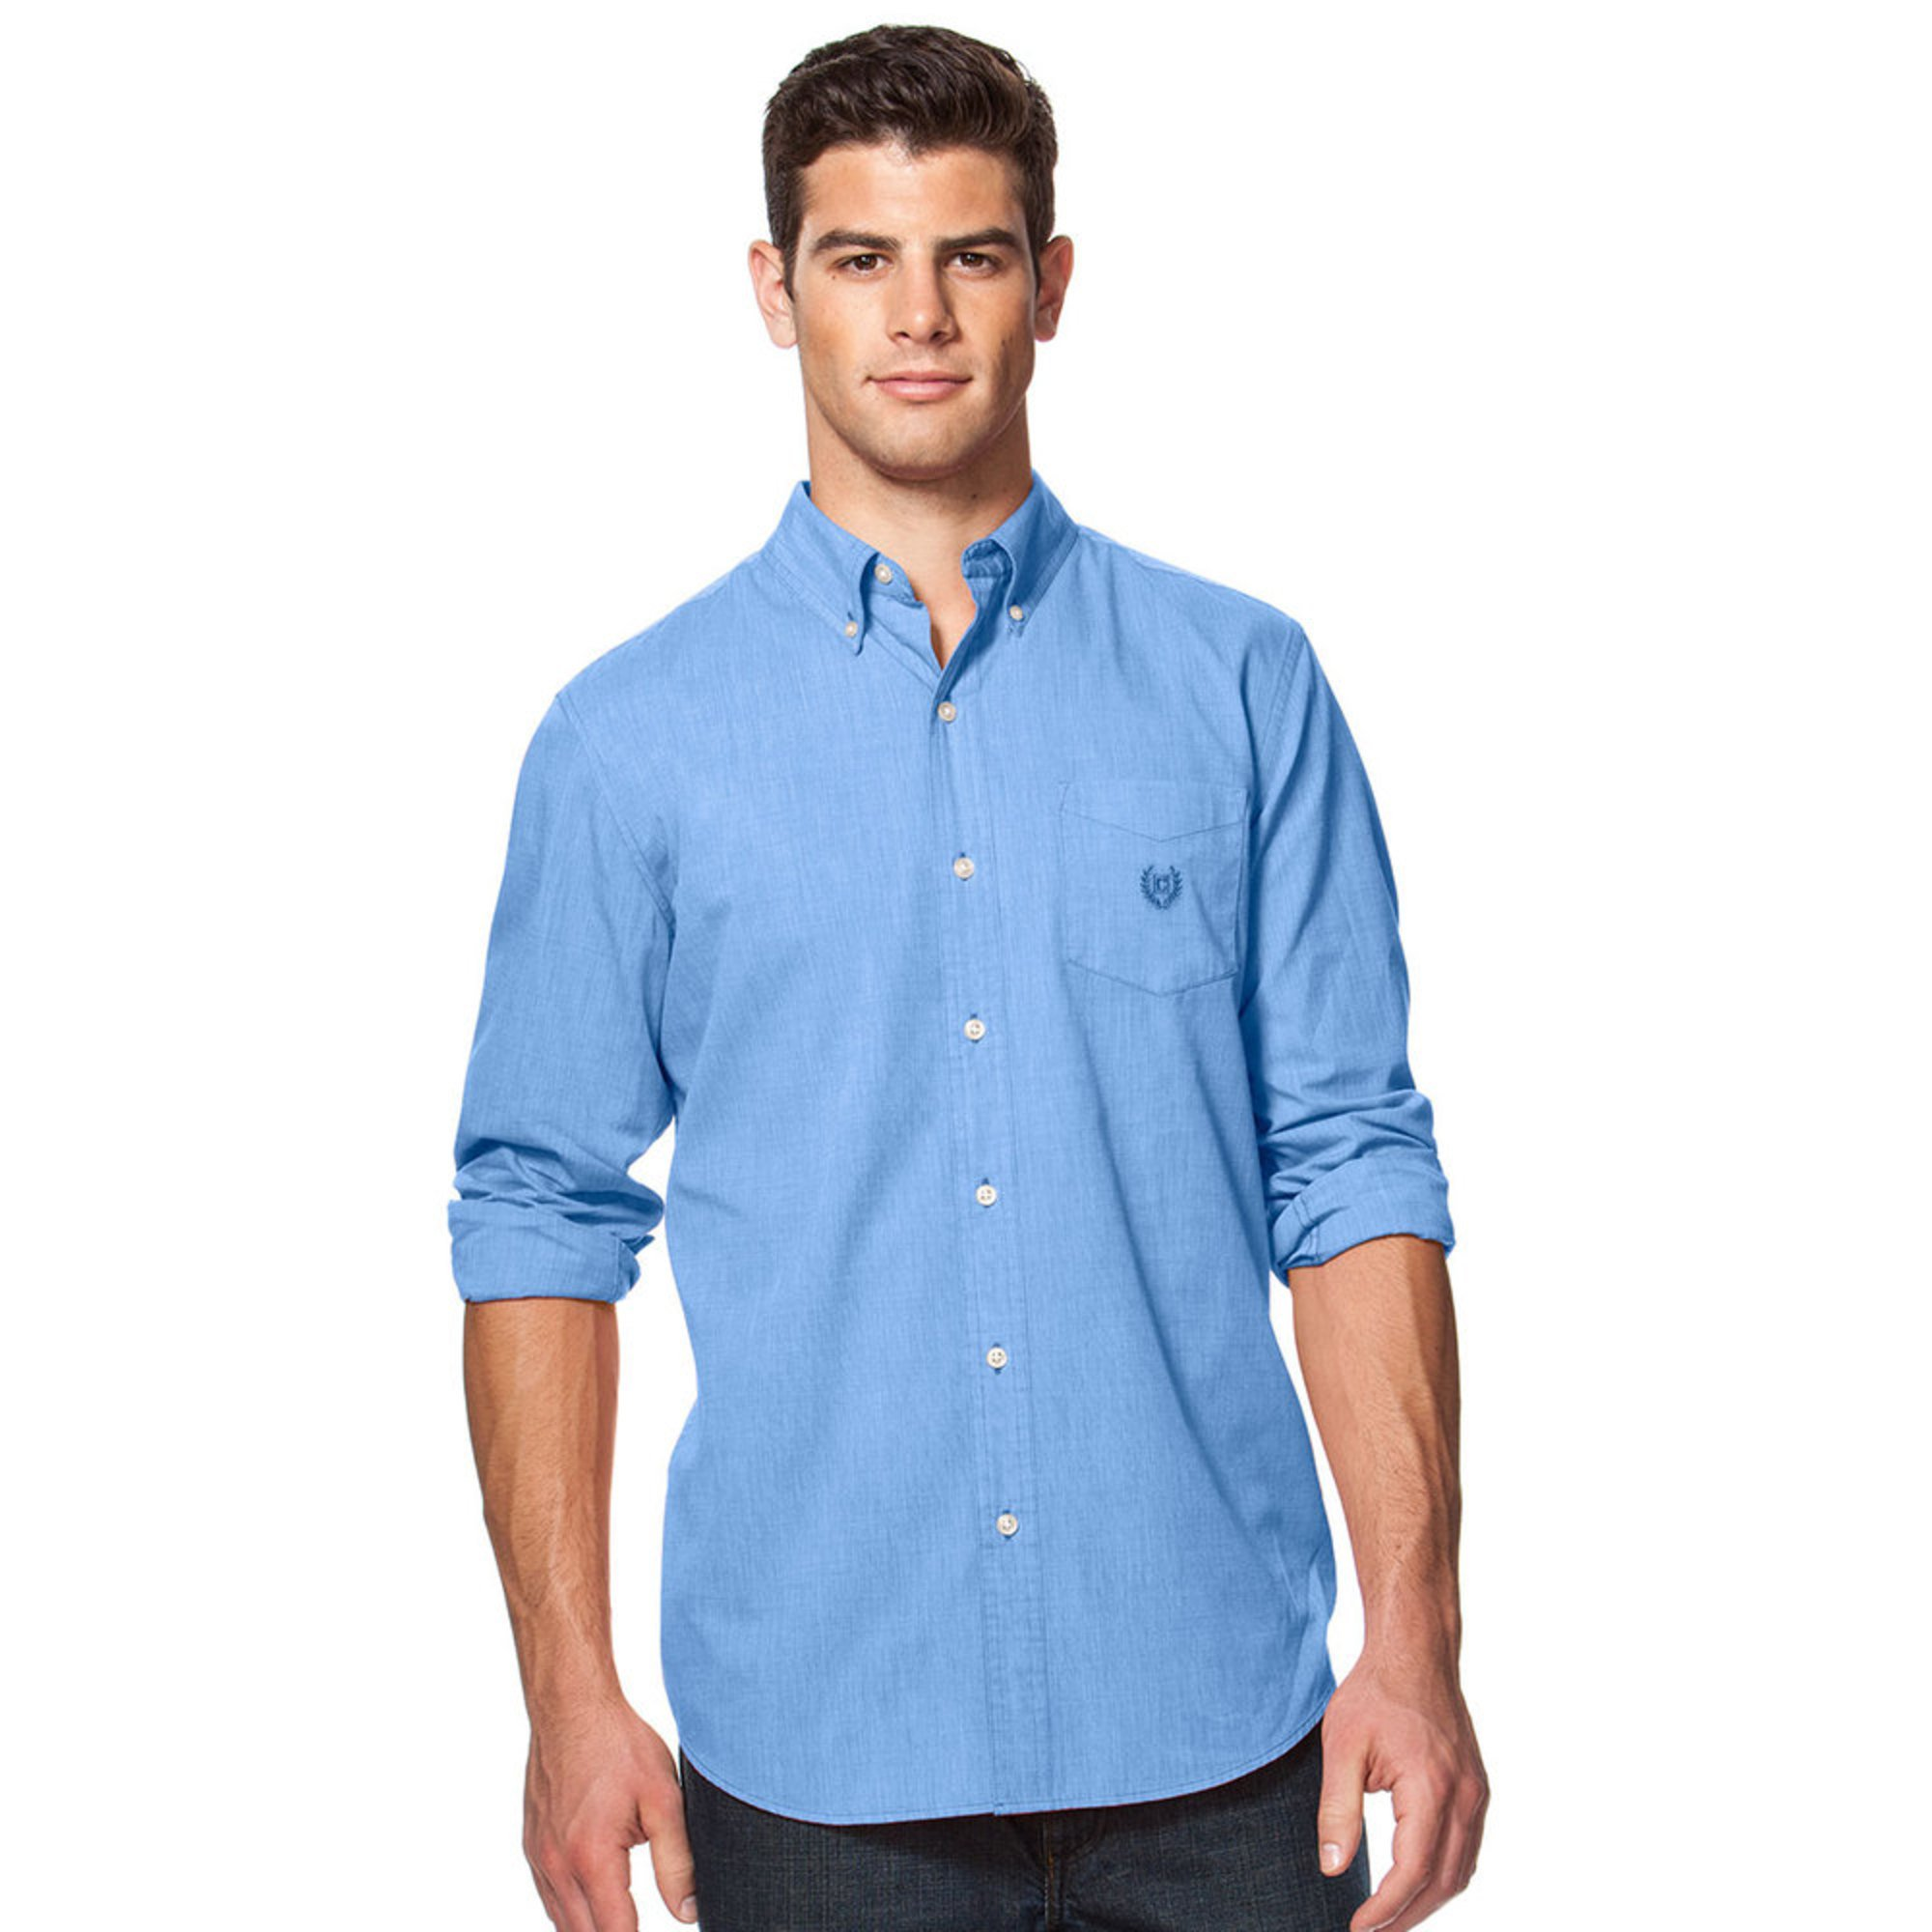 Chaps easy care sports shirts blue men 39 s woven button for Chaps shirts on sale